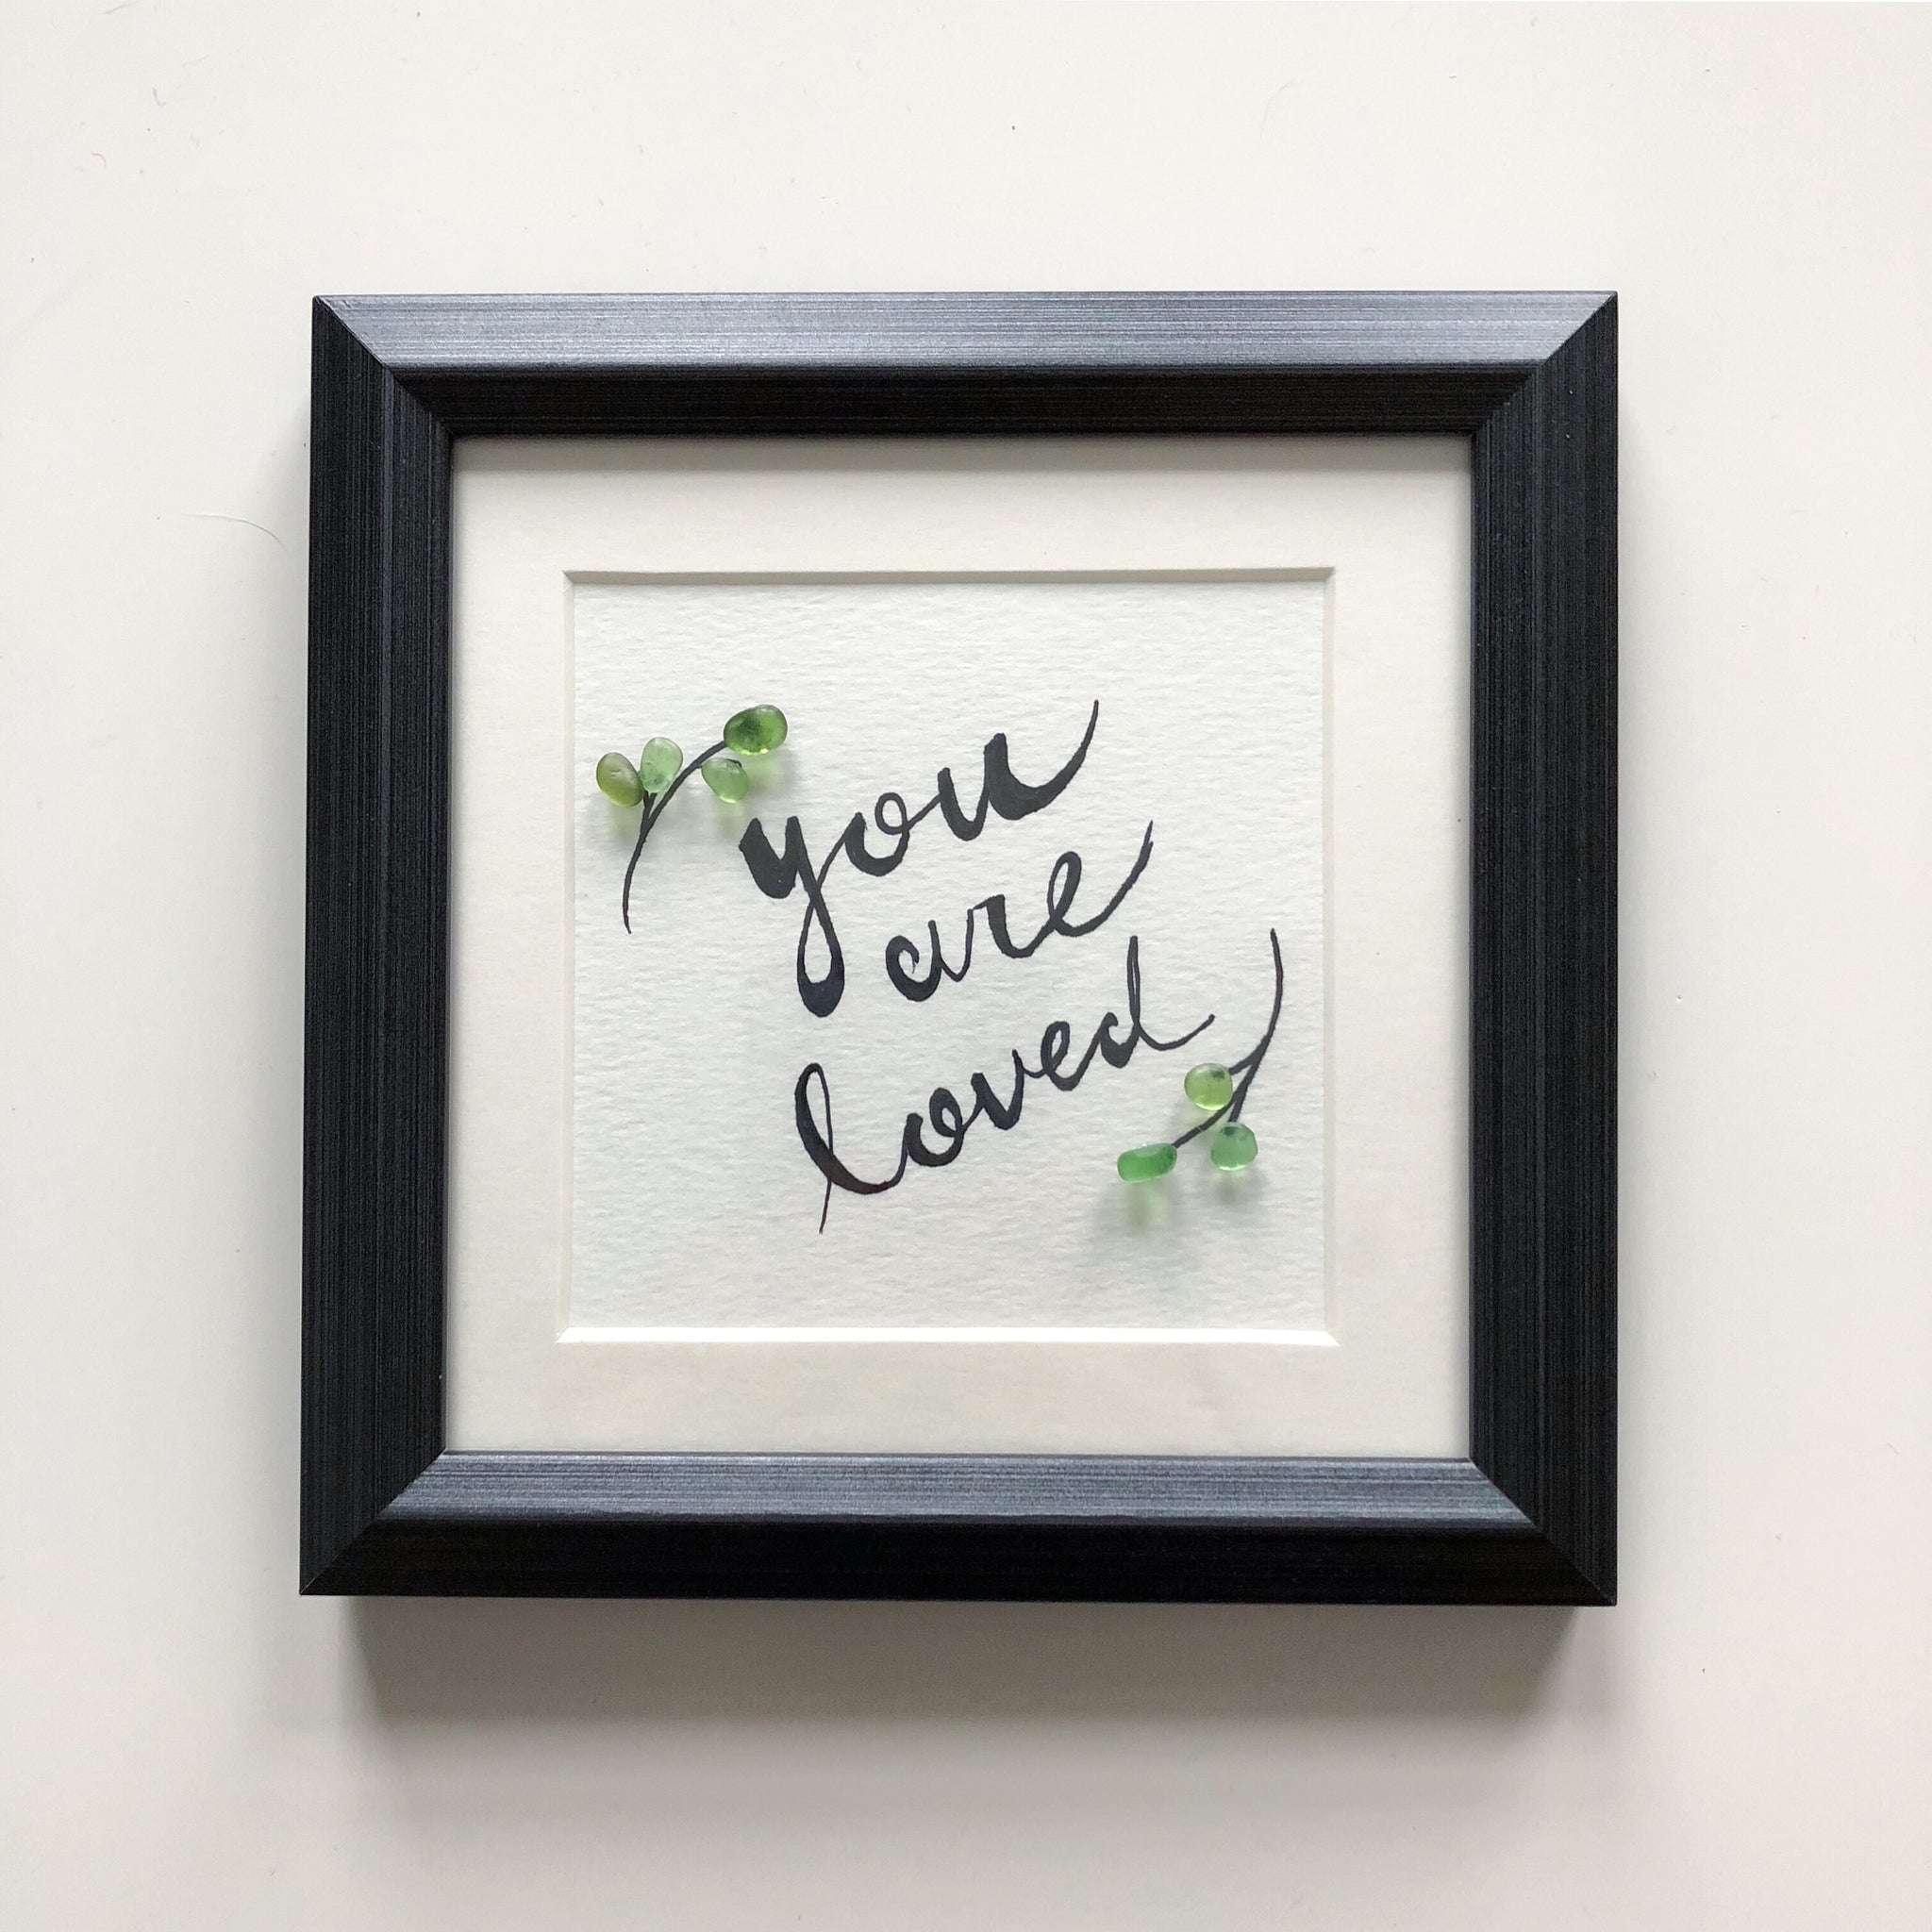 You Are Loved - 5x5 Seaglass Framed Art